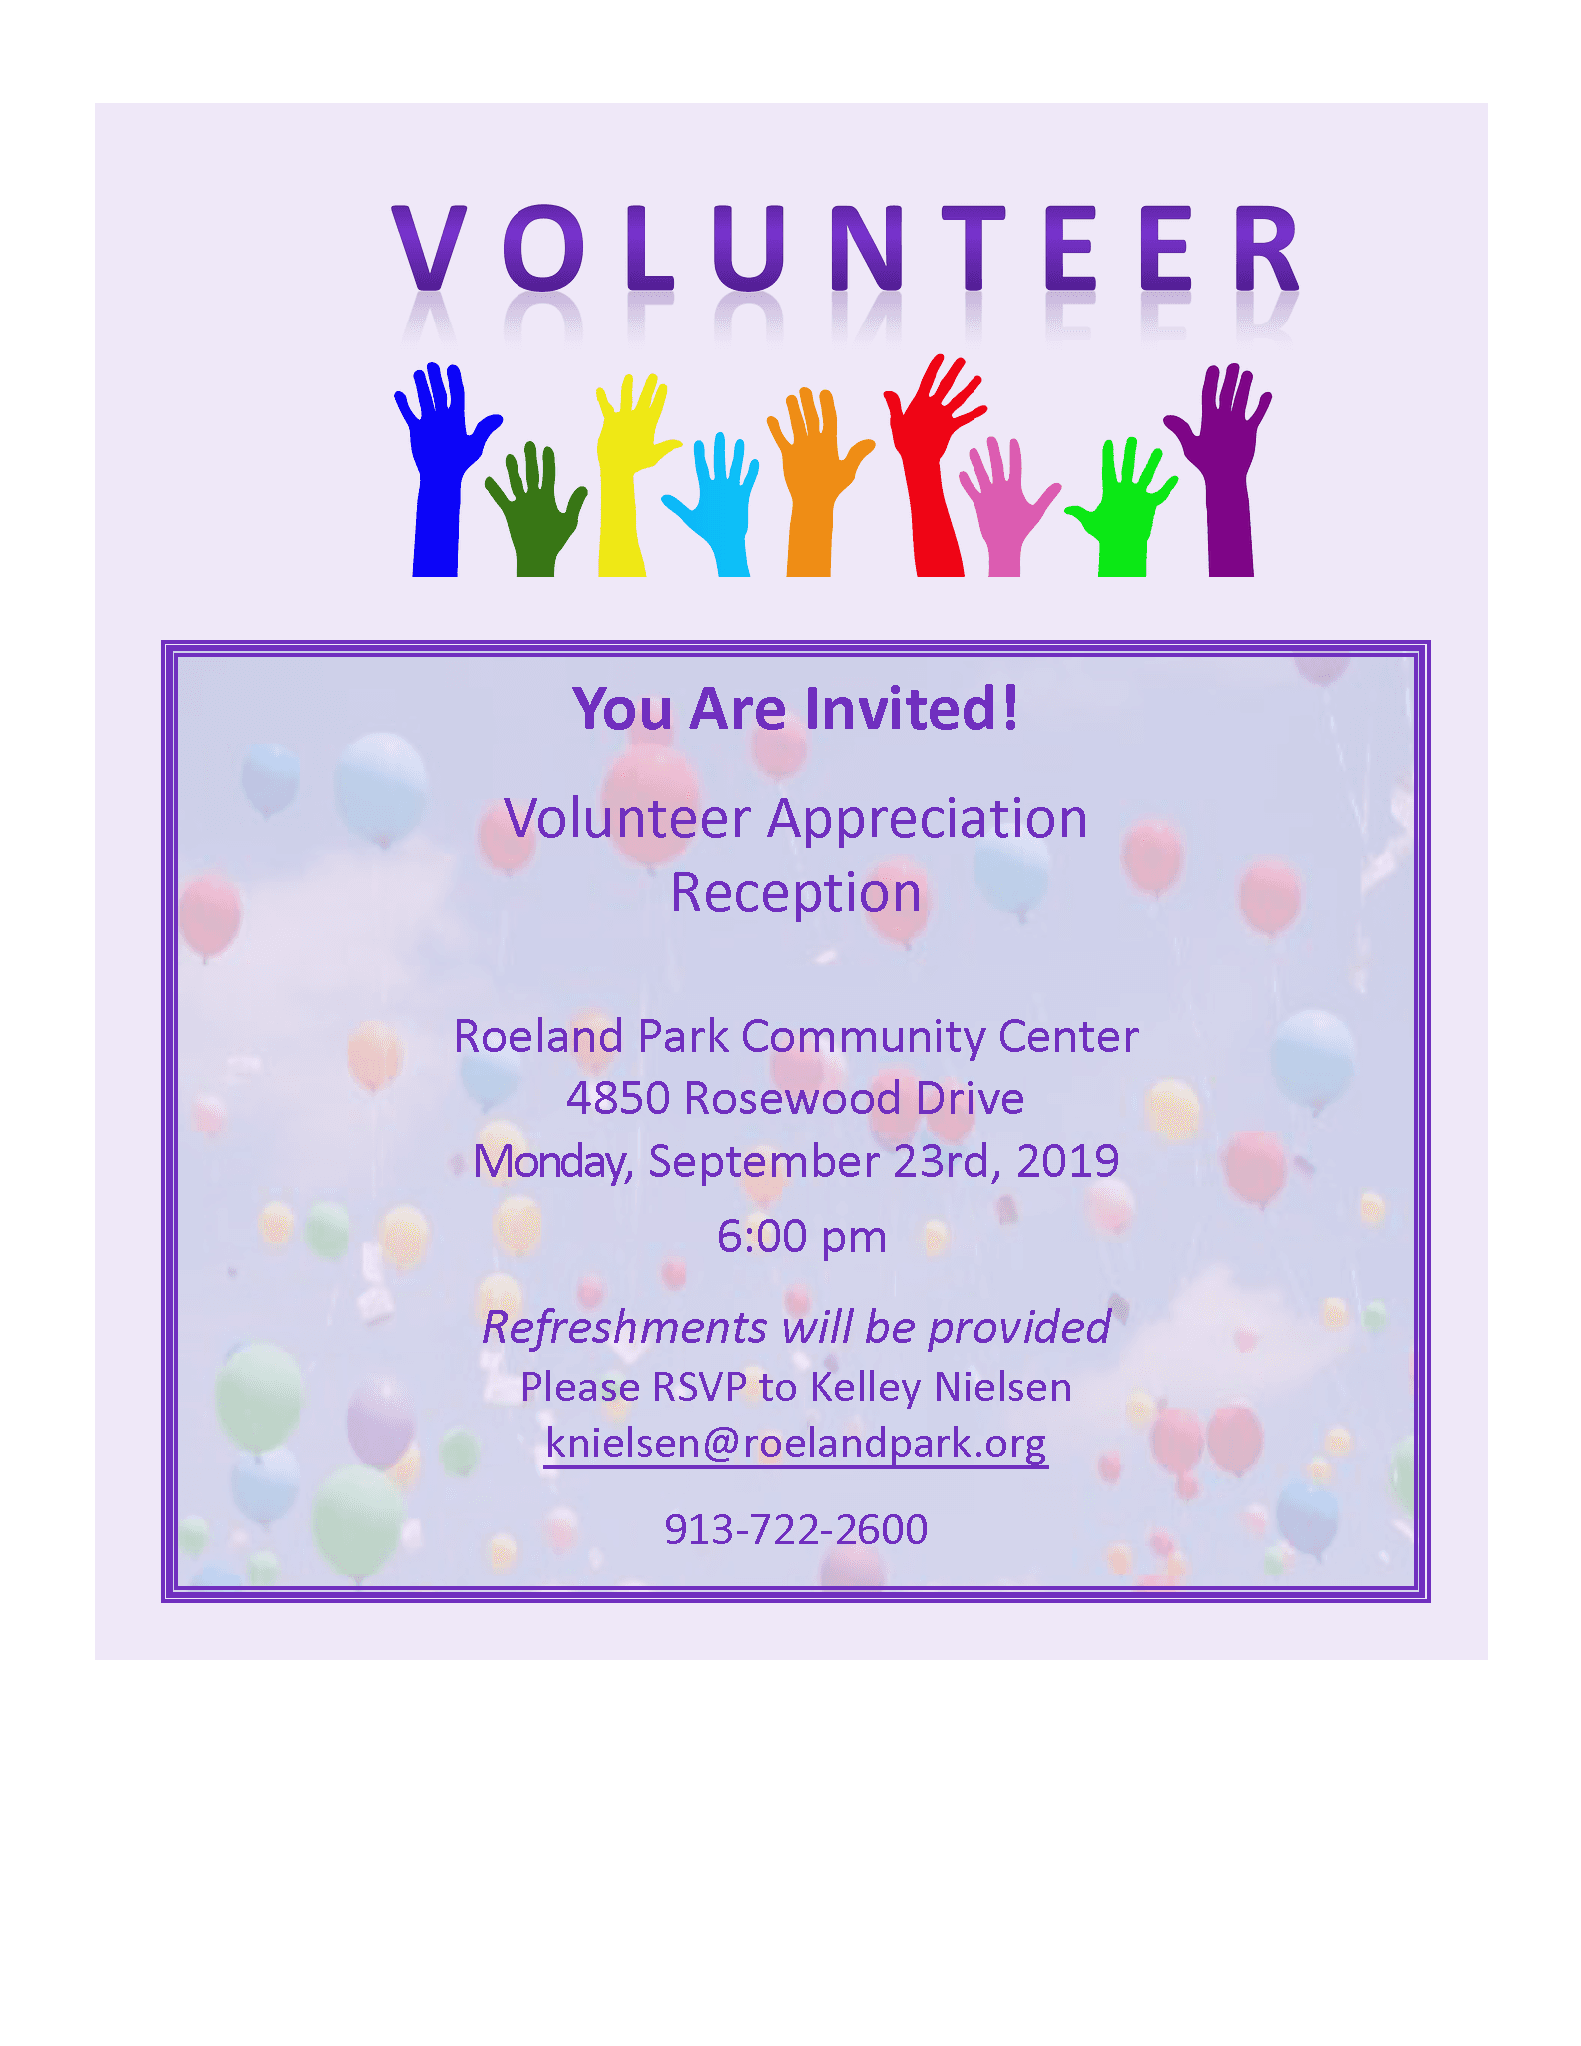 Volunteer reception invitation